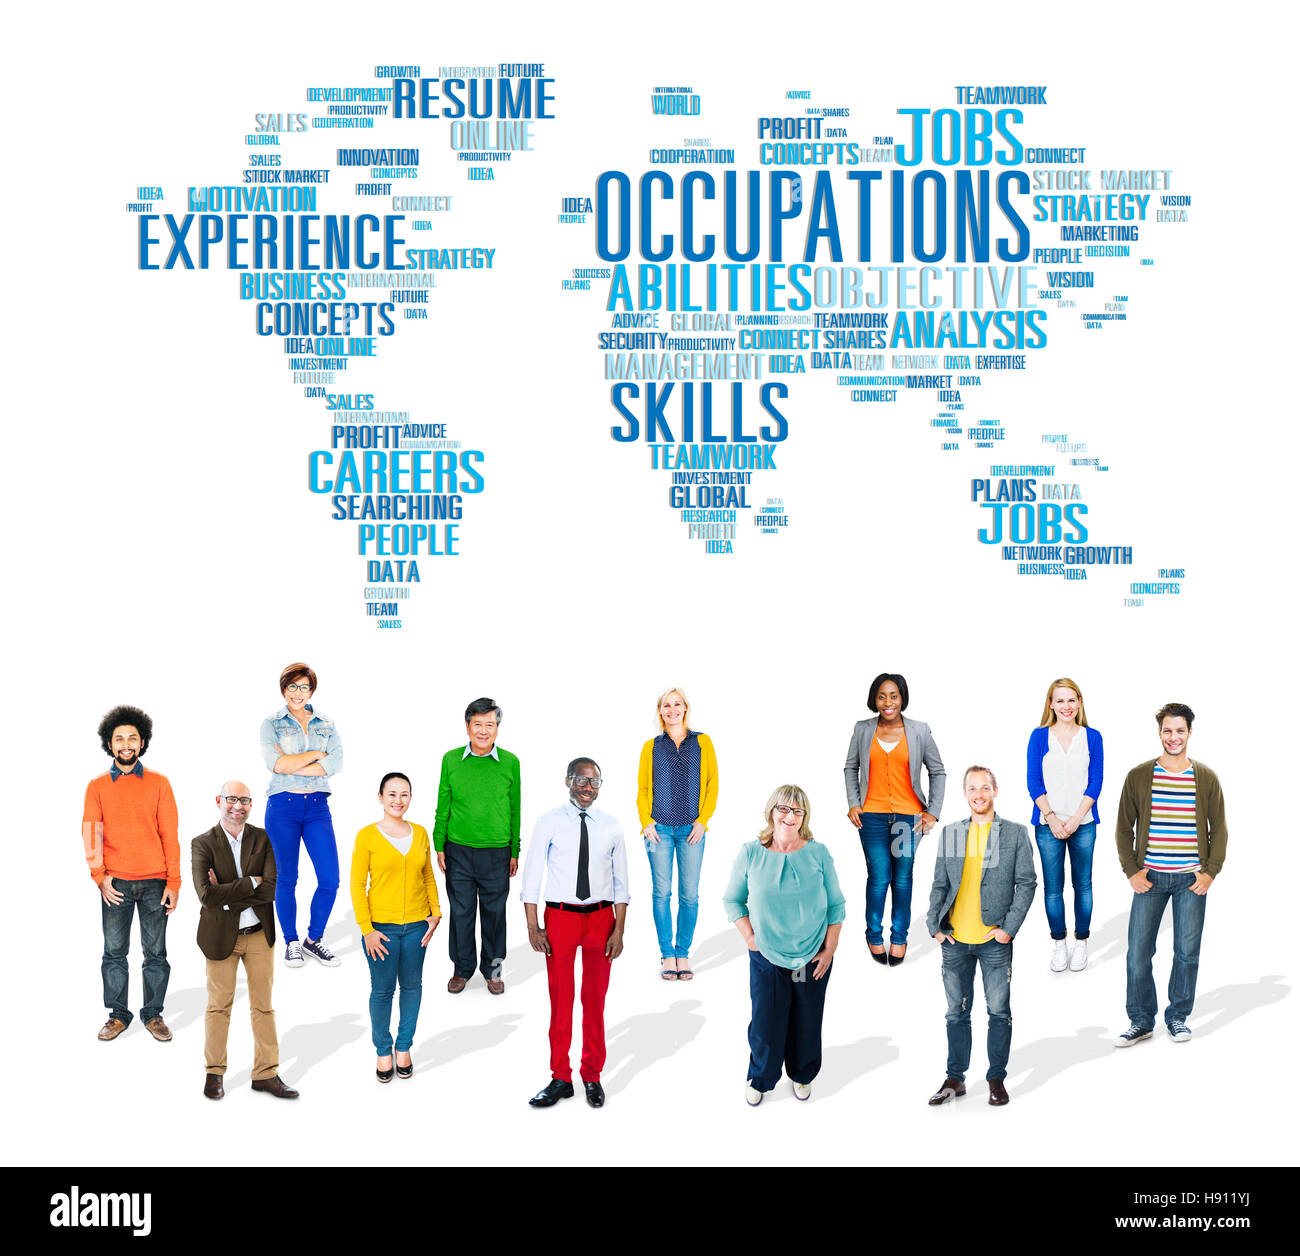 Occupation Job Careers Expertise Human Resources Concept - Stock Image